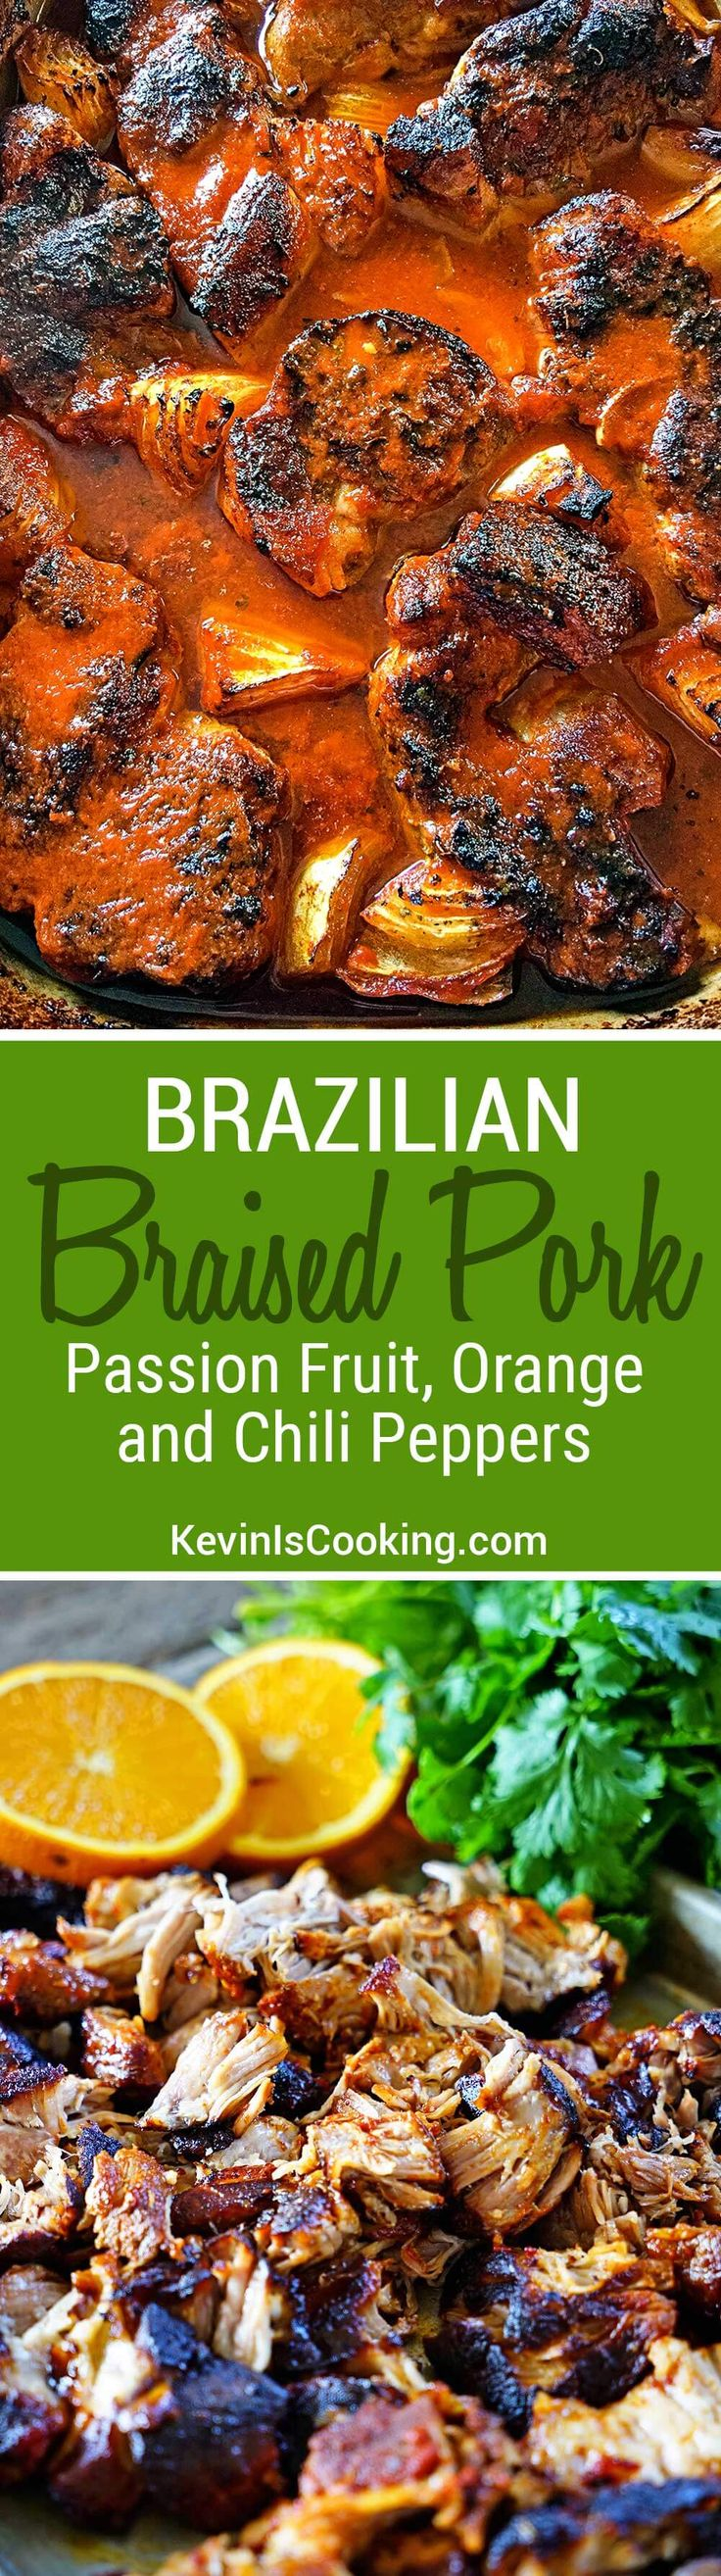 This Brazilian Braised Pork in Passion Fruit, Orange and Guajillo Peppers is off the hook tasty! A family favorite I use in tacos, sandwiches and quesadillas.